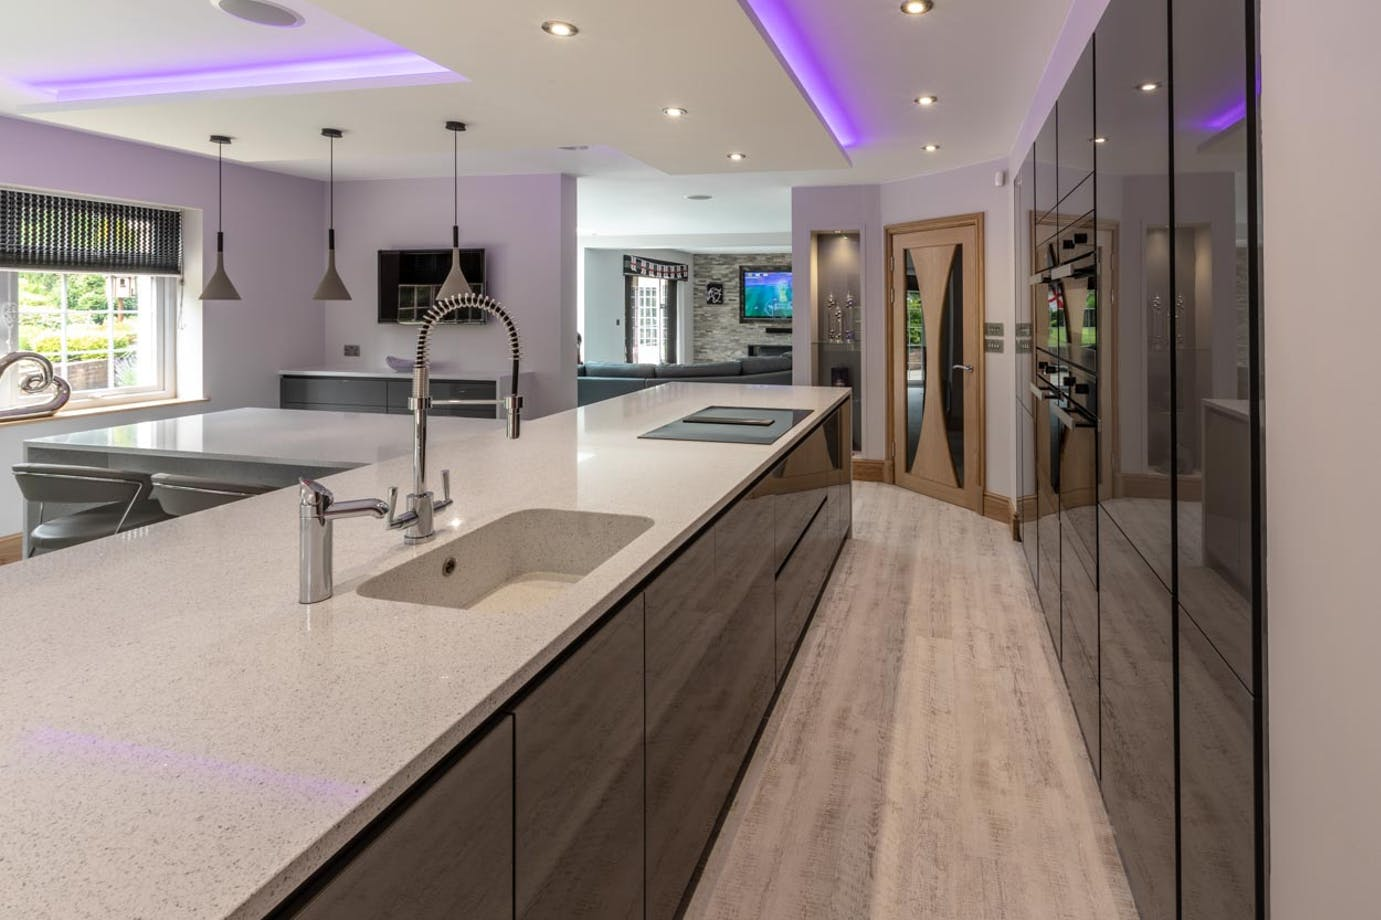 GREY GLOSS MODERN KITCHEN IN SHEFFIELD BY CONCEPT INTERIORS.